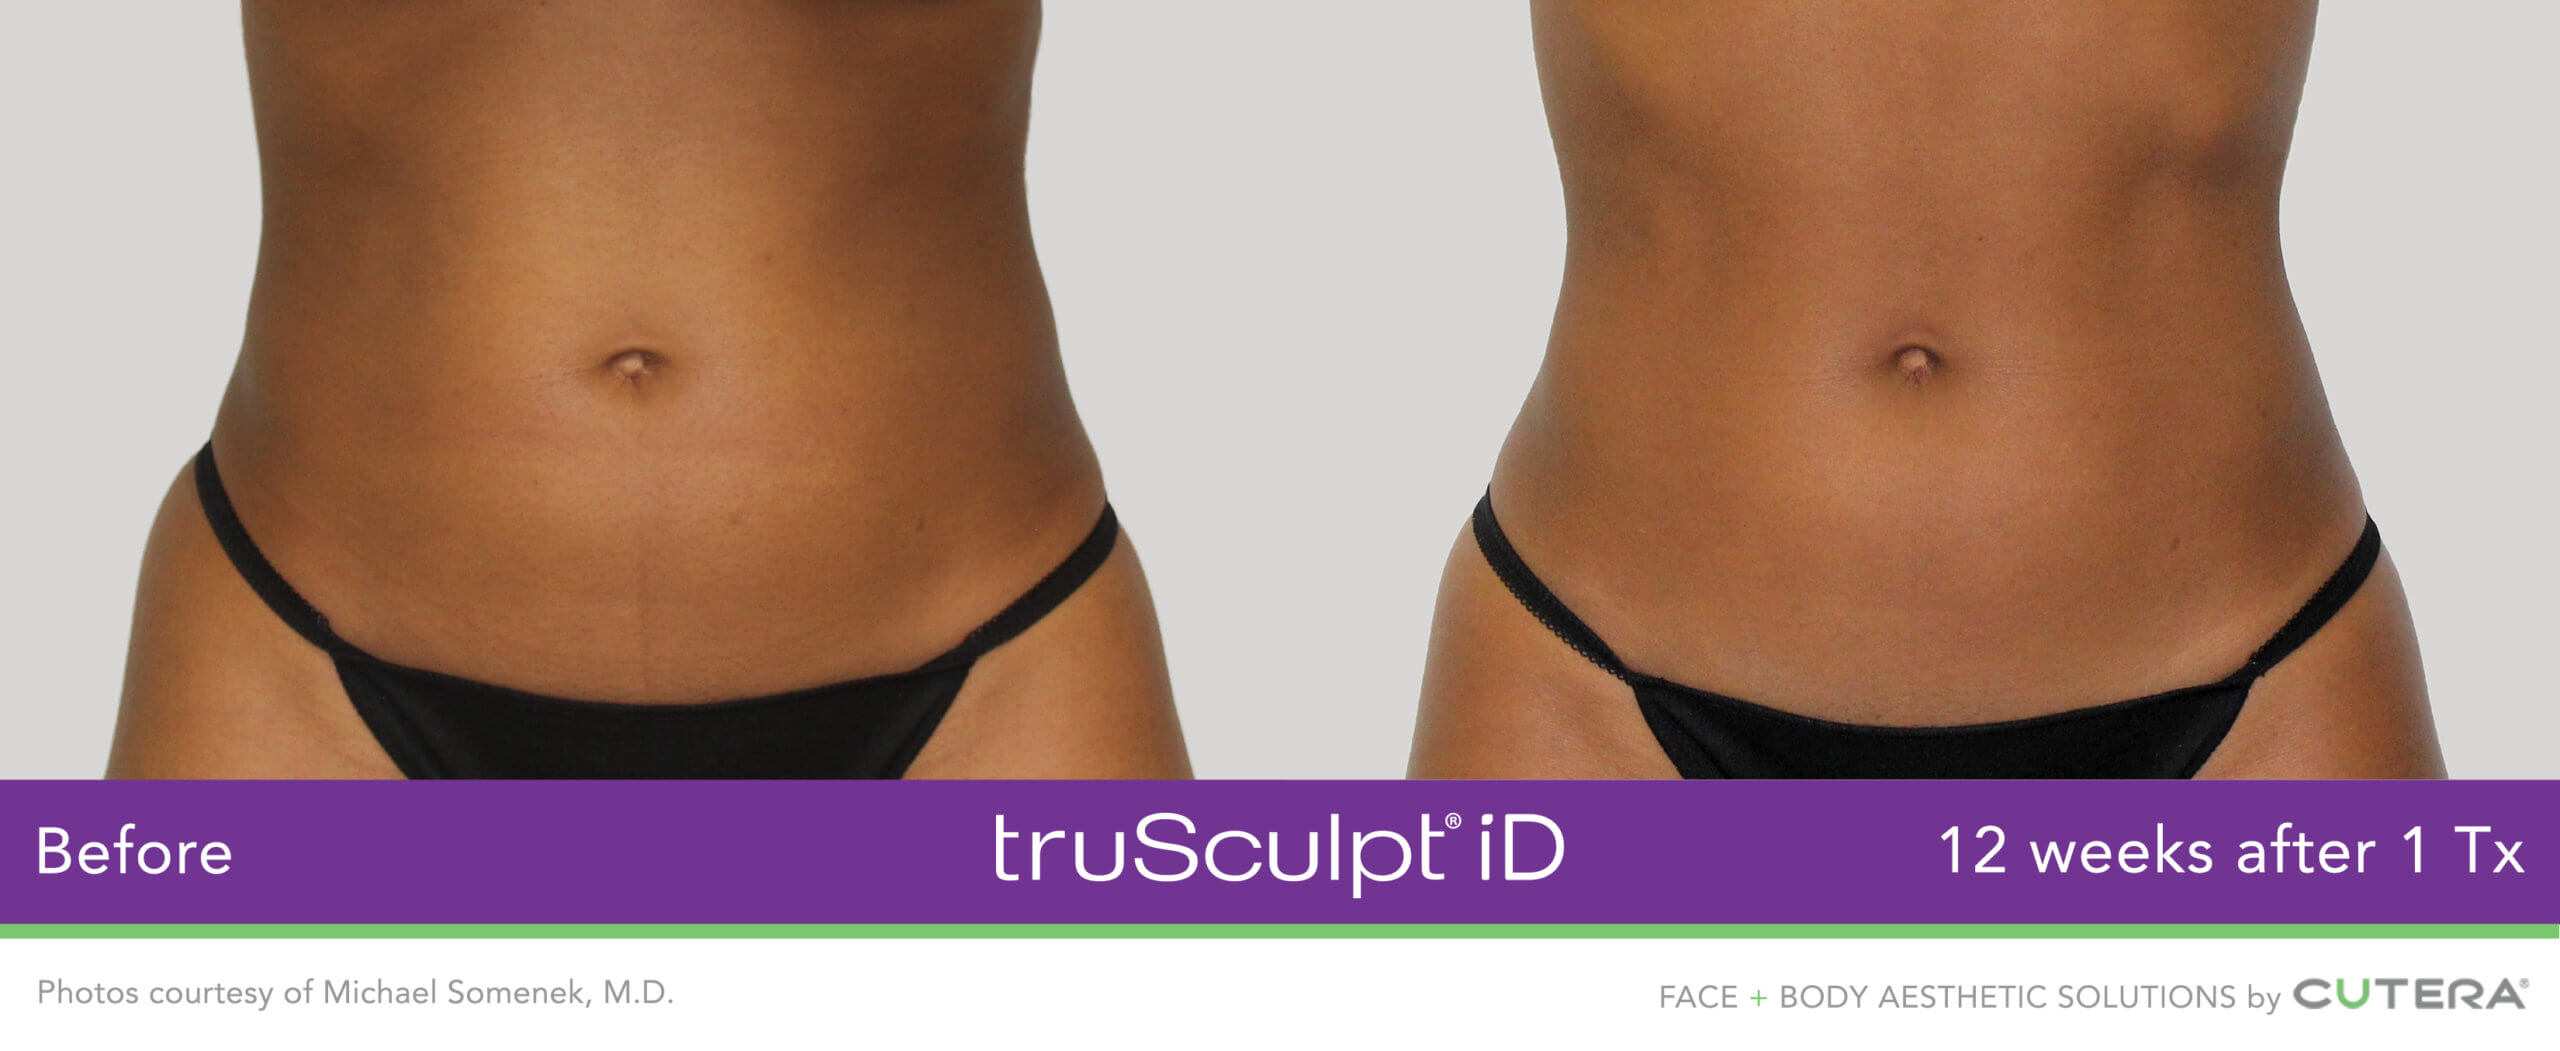 Body Sculpting before an after on the abdomen and obliques with truSculpt iD